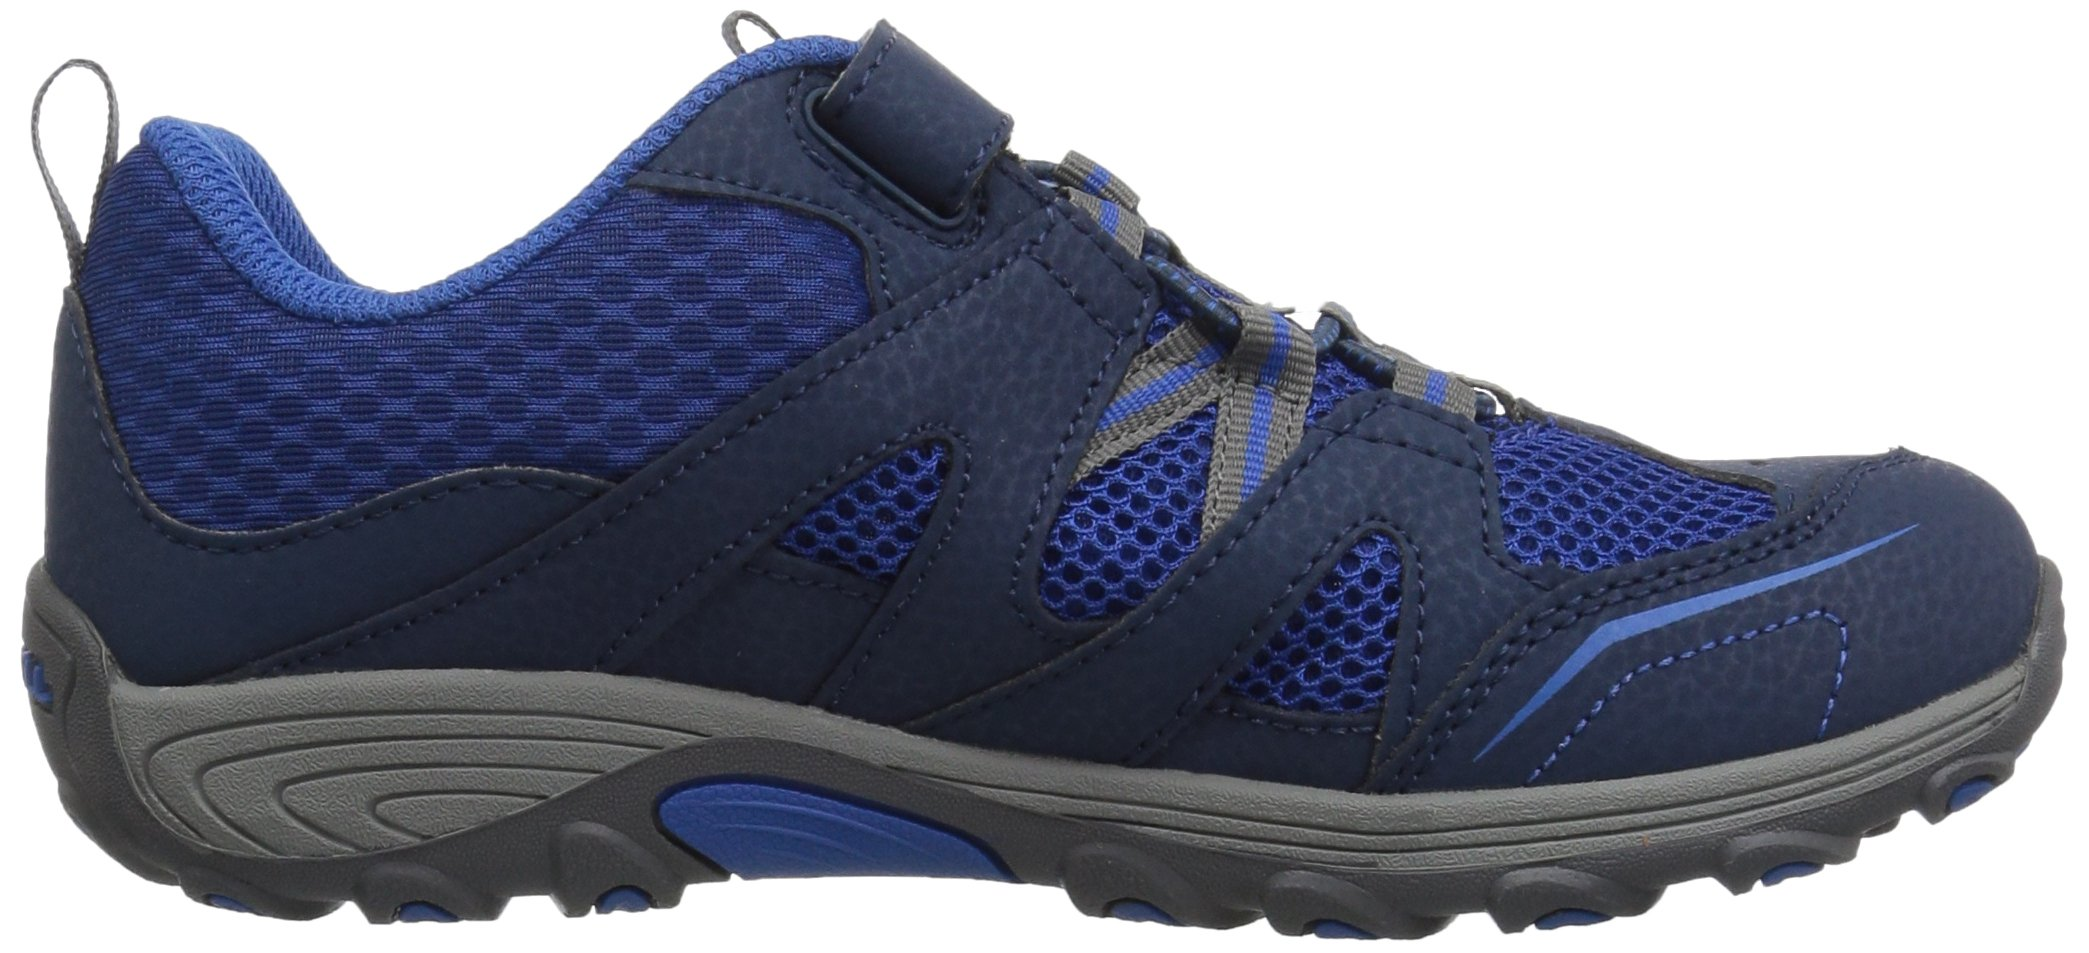 Merrell Trail Chaser Hiking Shoe, Navy, 4 M US Big Kid by Merrell (Image #7)